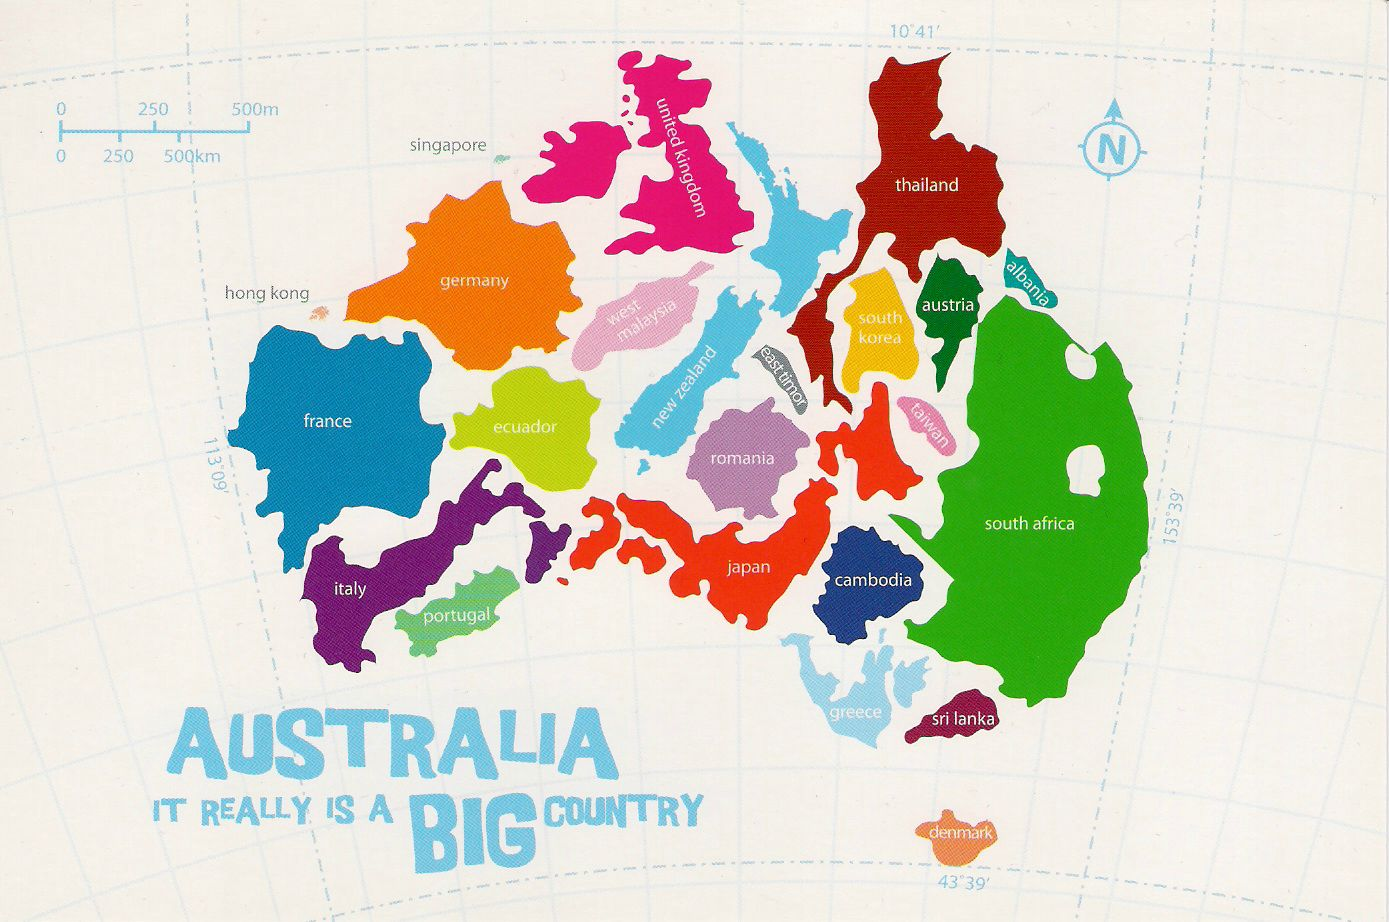 Comparison of Australia's size with over 20 other countries